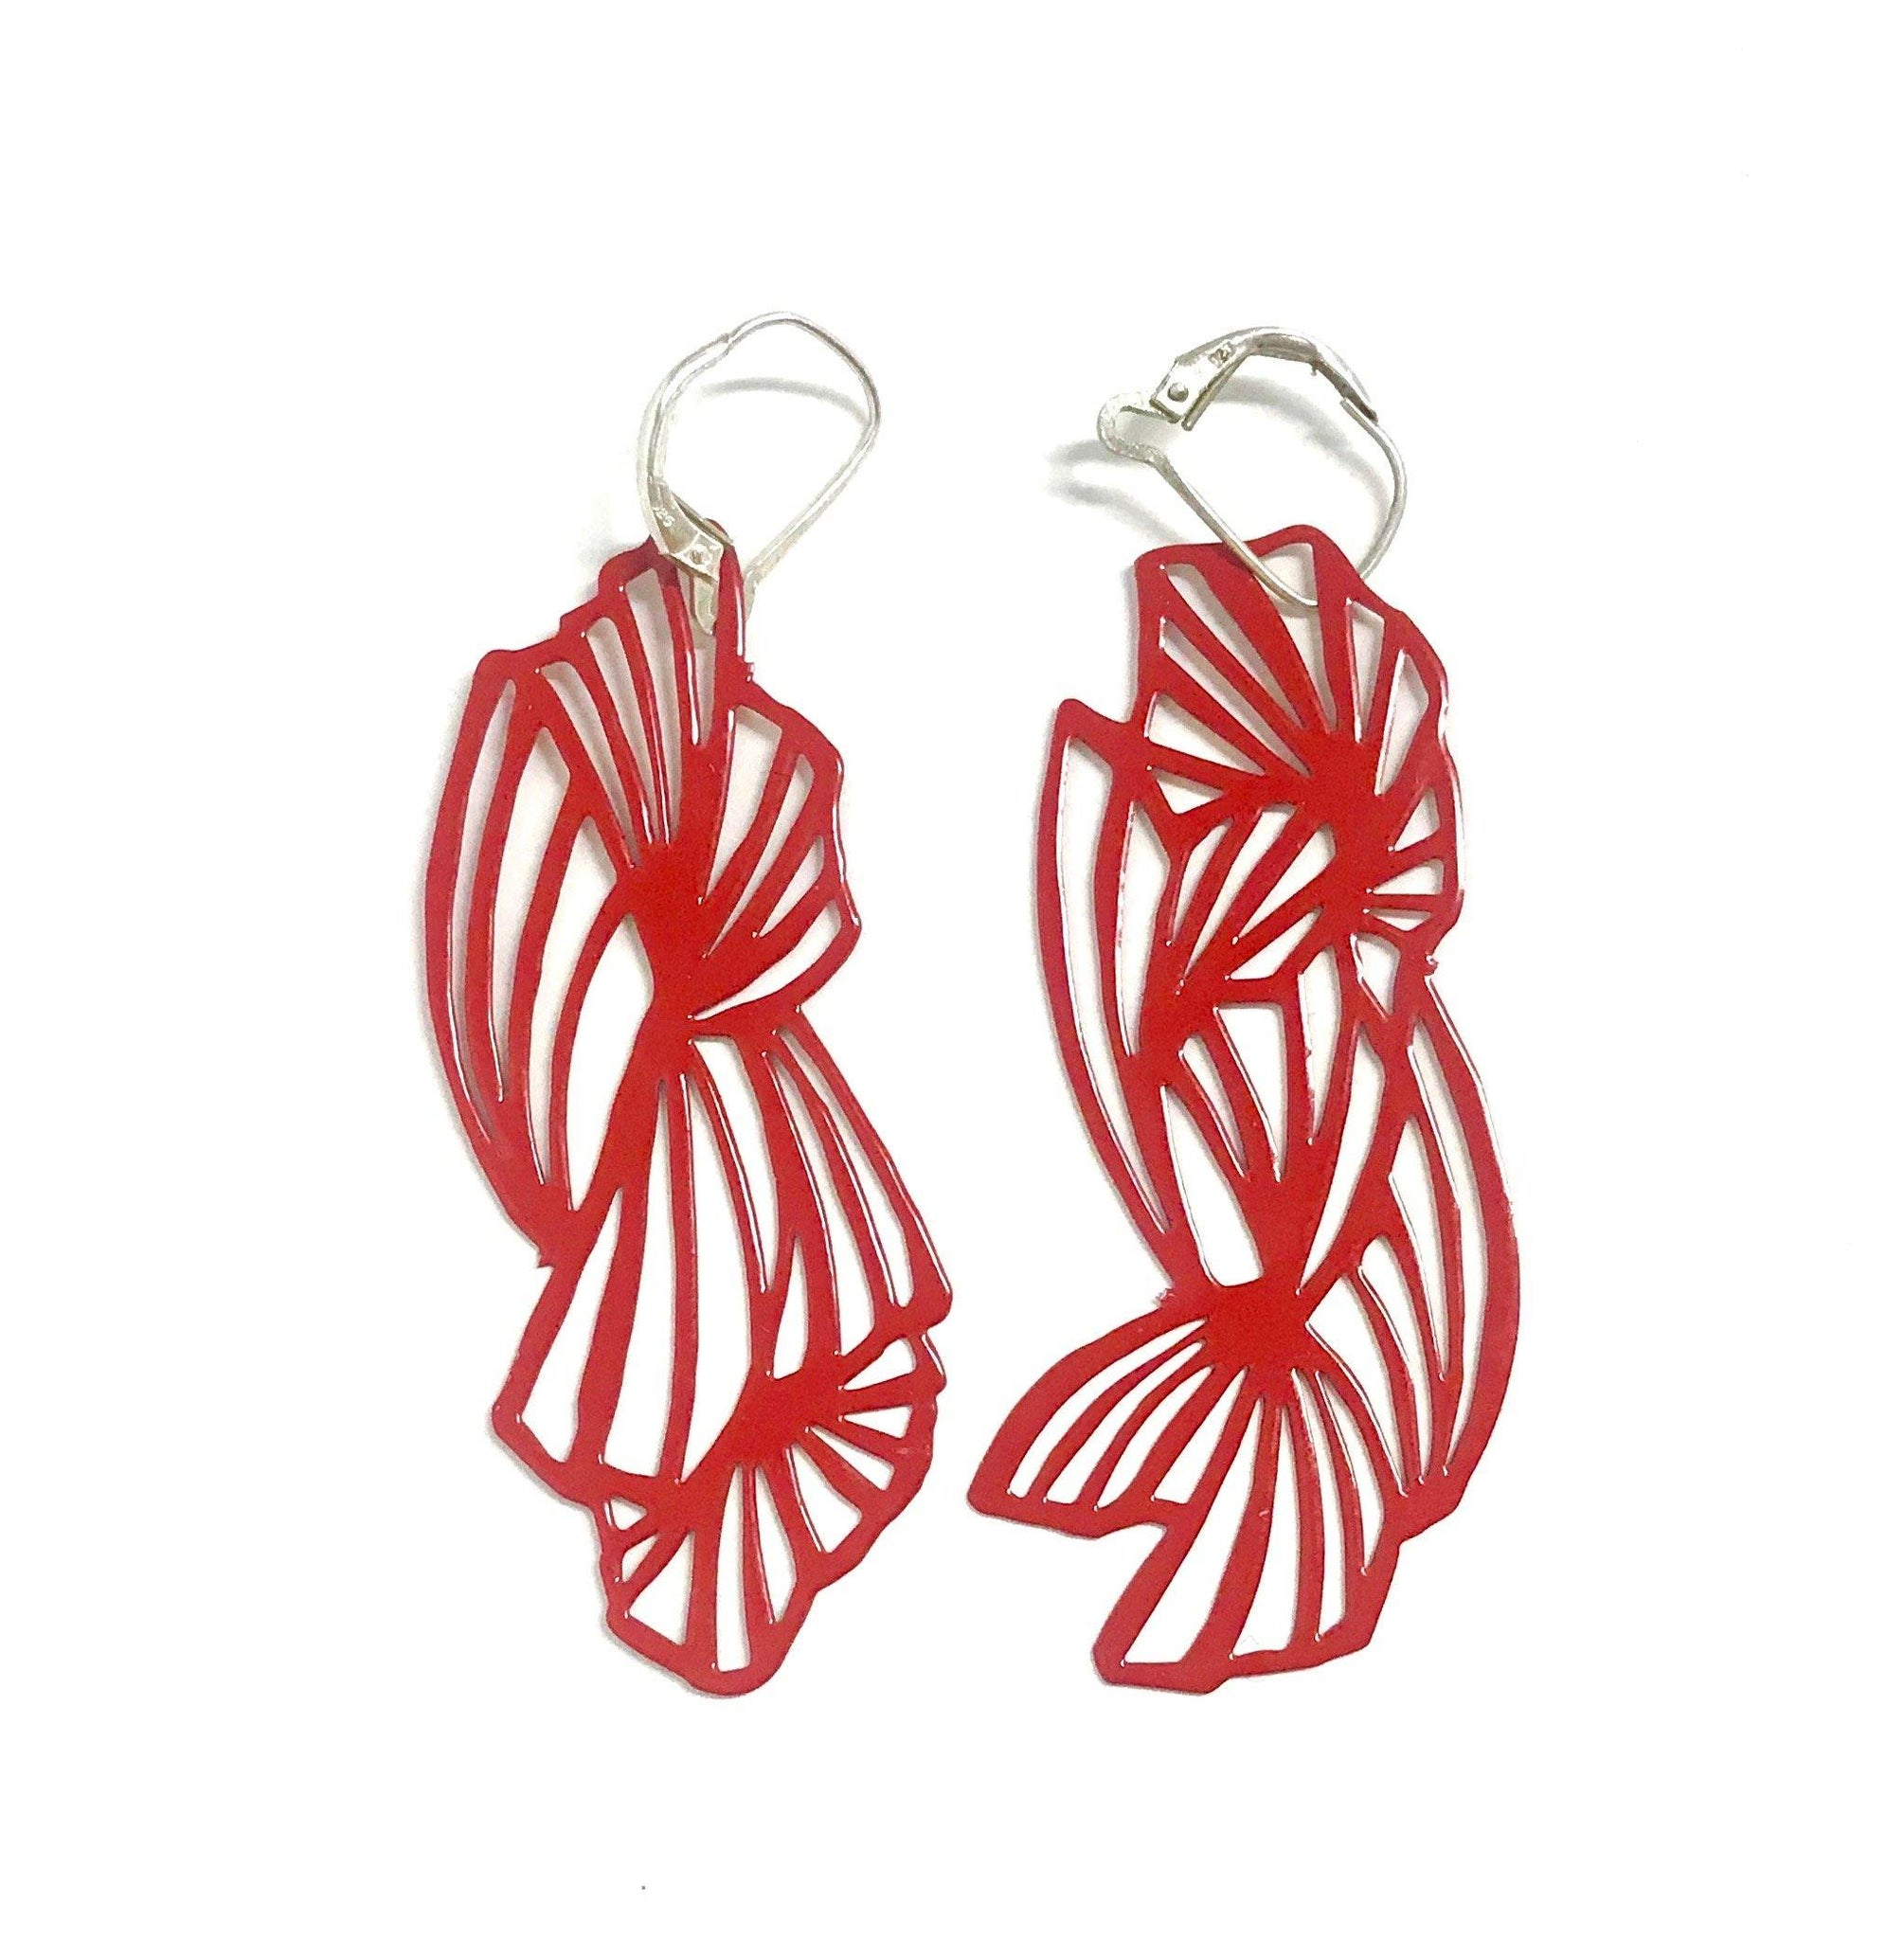 Fan Pop-Out Earrings - Pop-Out Jewelry